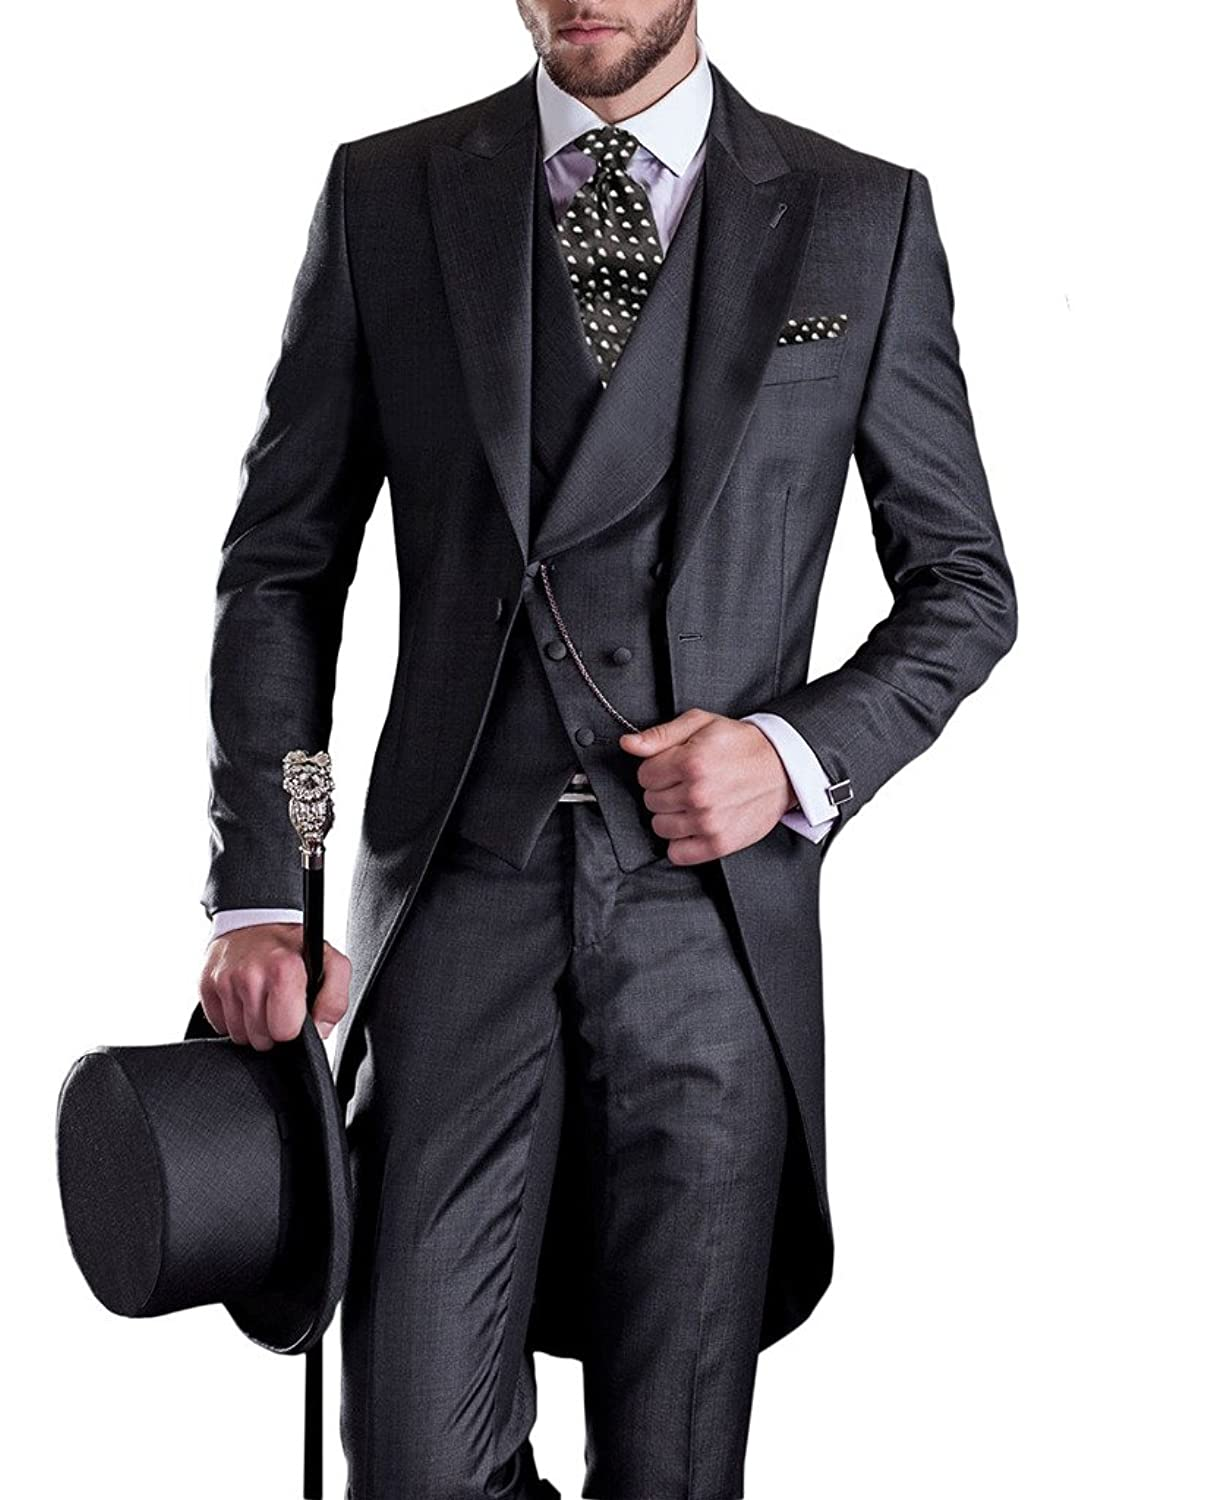 Men's Vintage Style Suits, Classic Suits GEORGE BRIDE Premium Mens Tail Tuxedo 3pc Tailcoat suit in Gray Suit Jacket Vest Suit Pants $79.00 AT vintagedancer.com